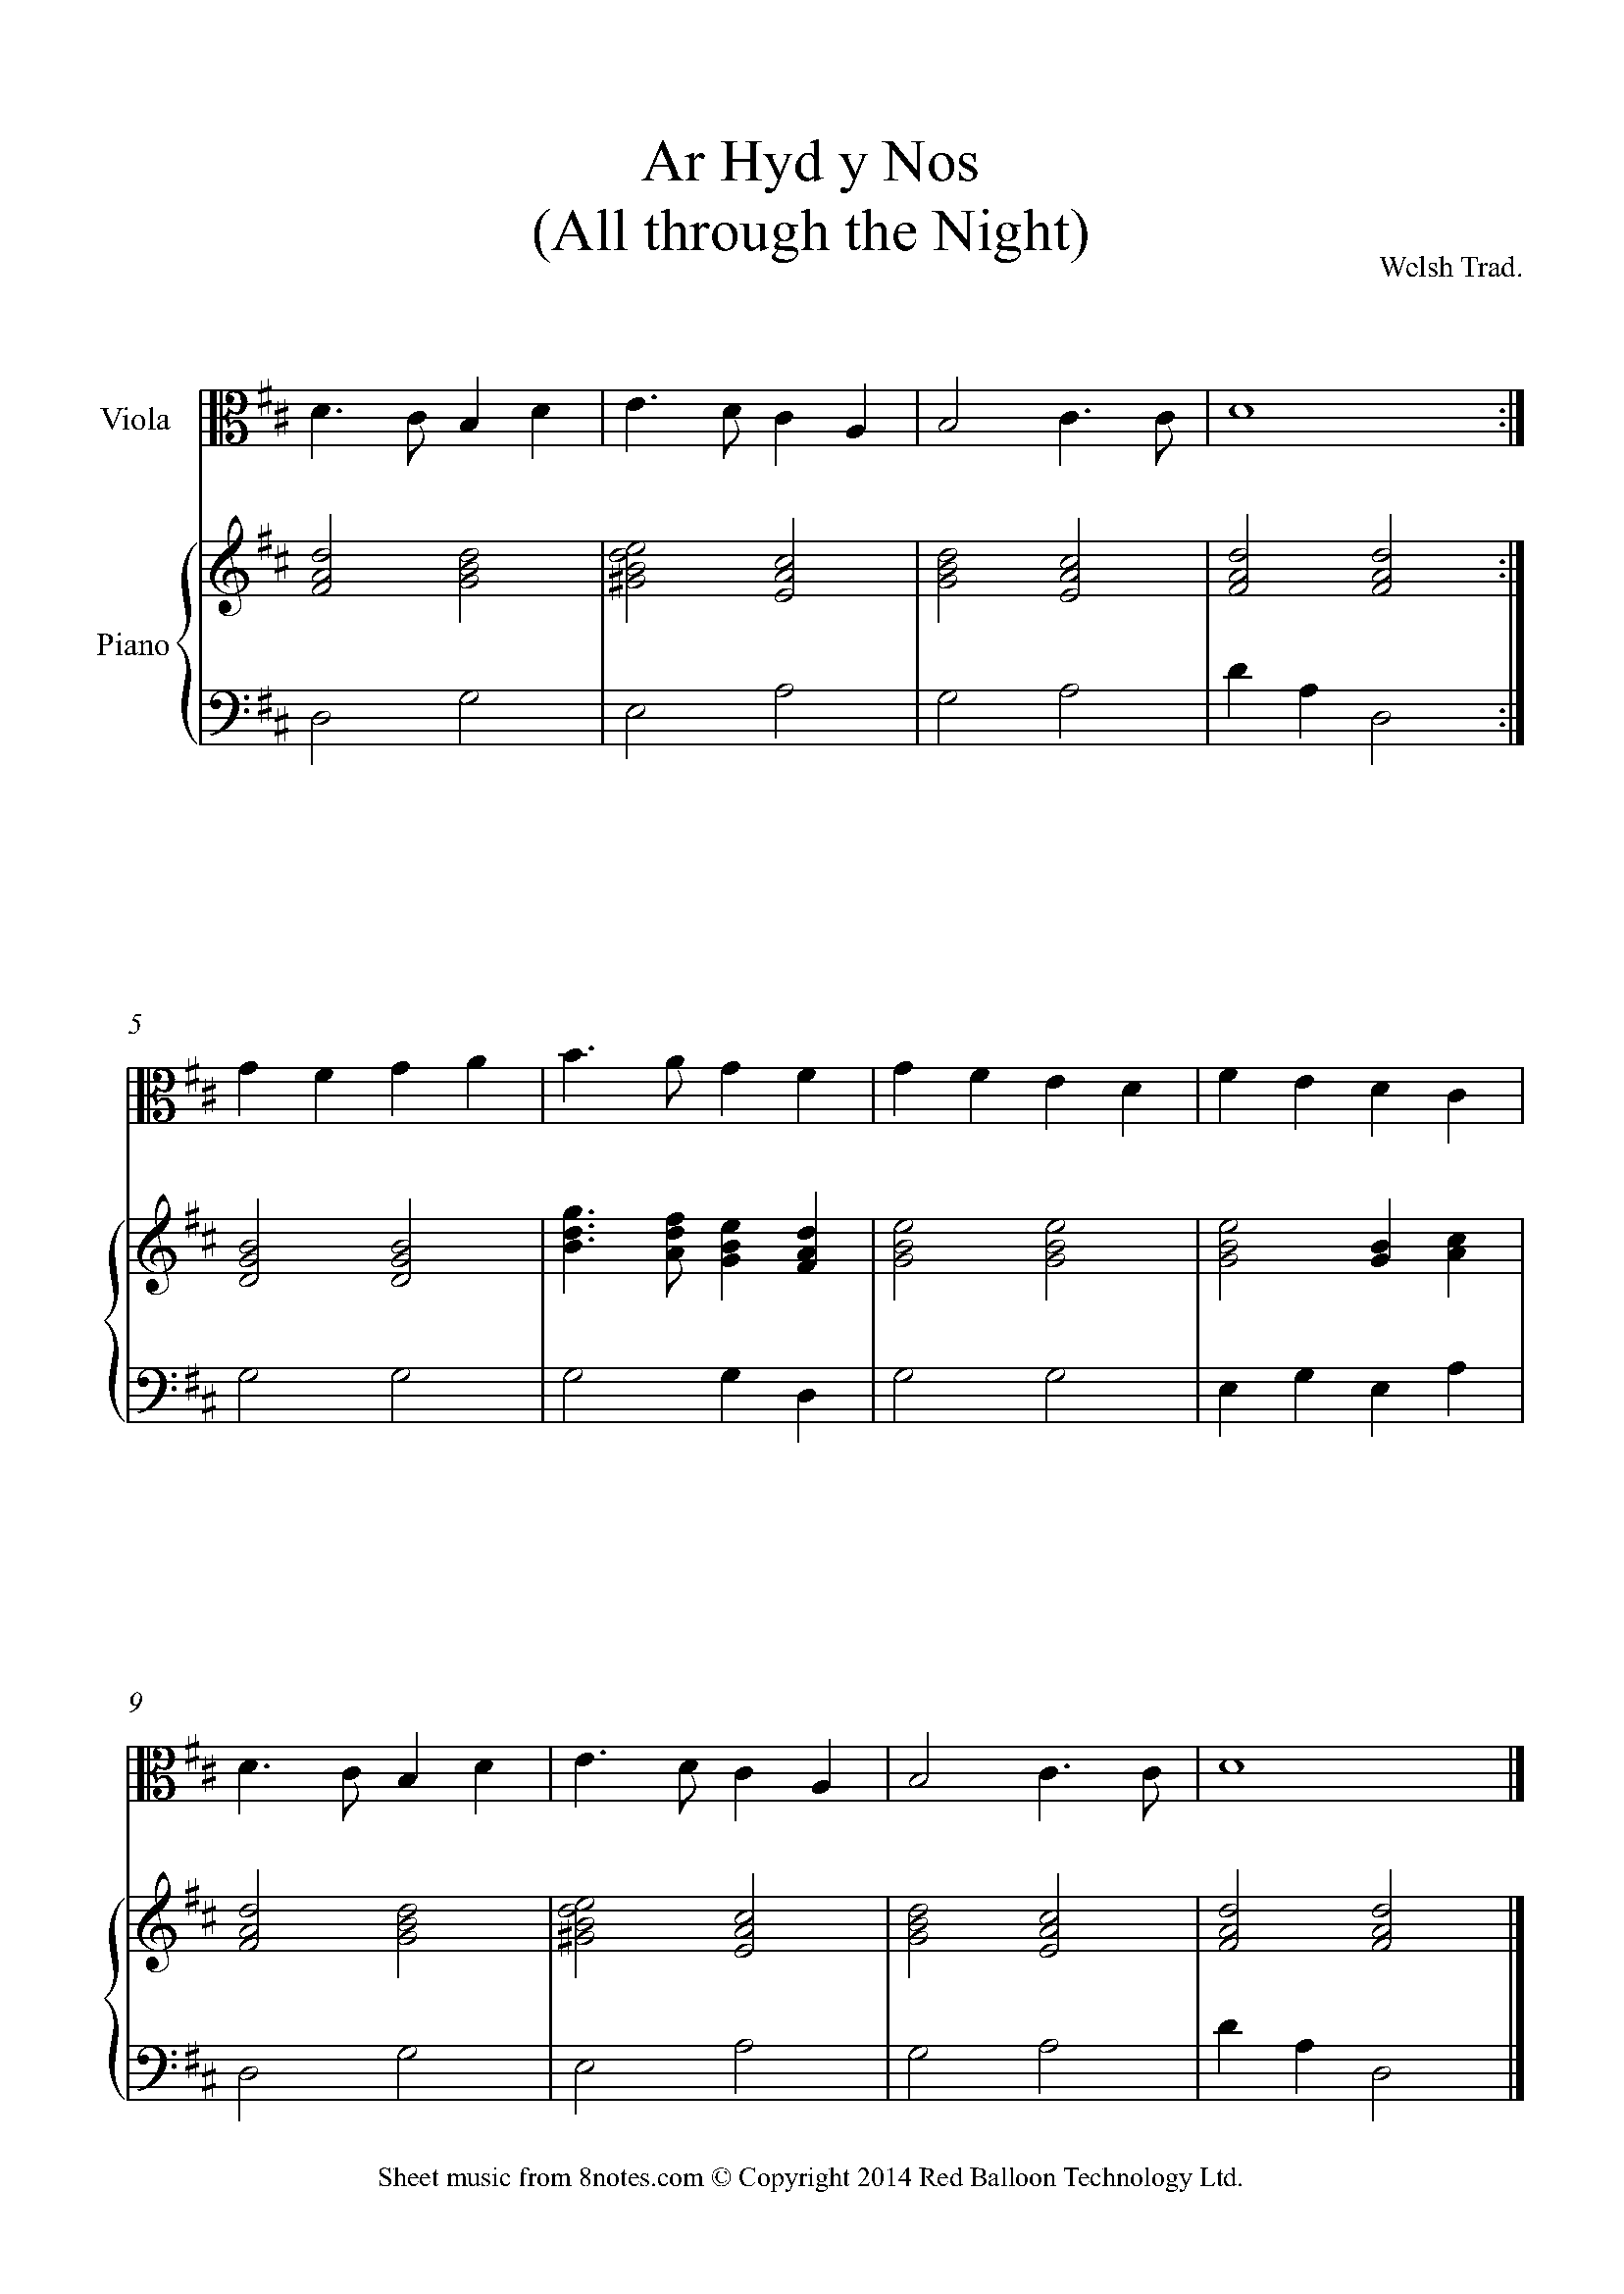 ar hyd y nos -all through the night (traditional welsh) sheet music for  viola - 8notes.com  8notes